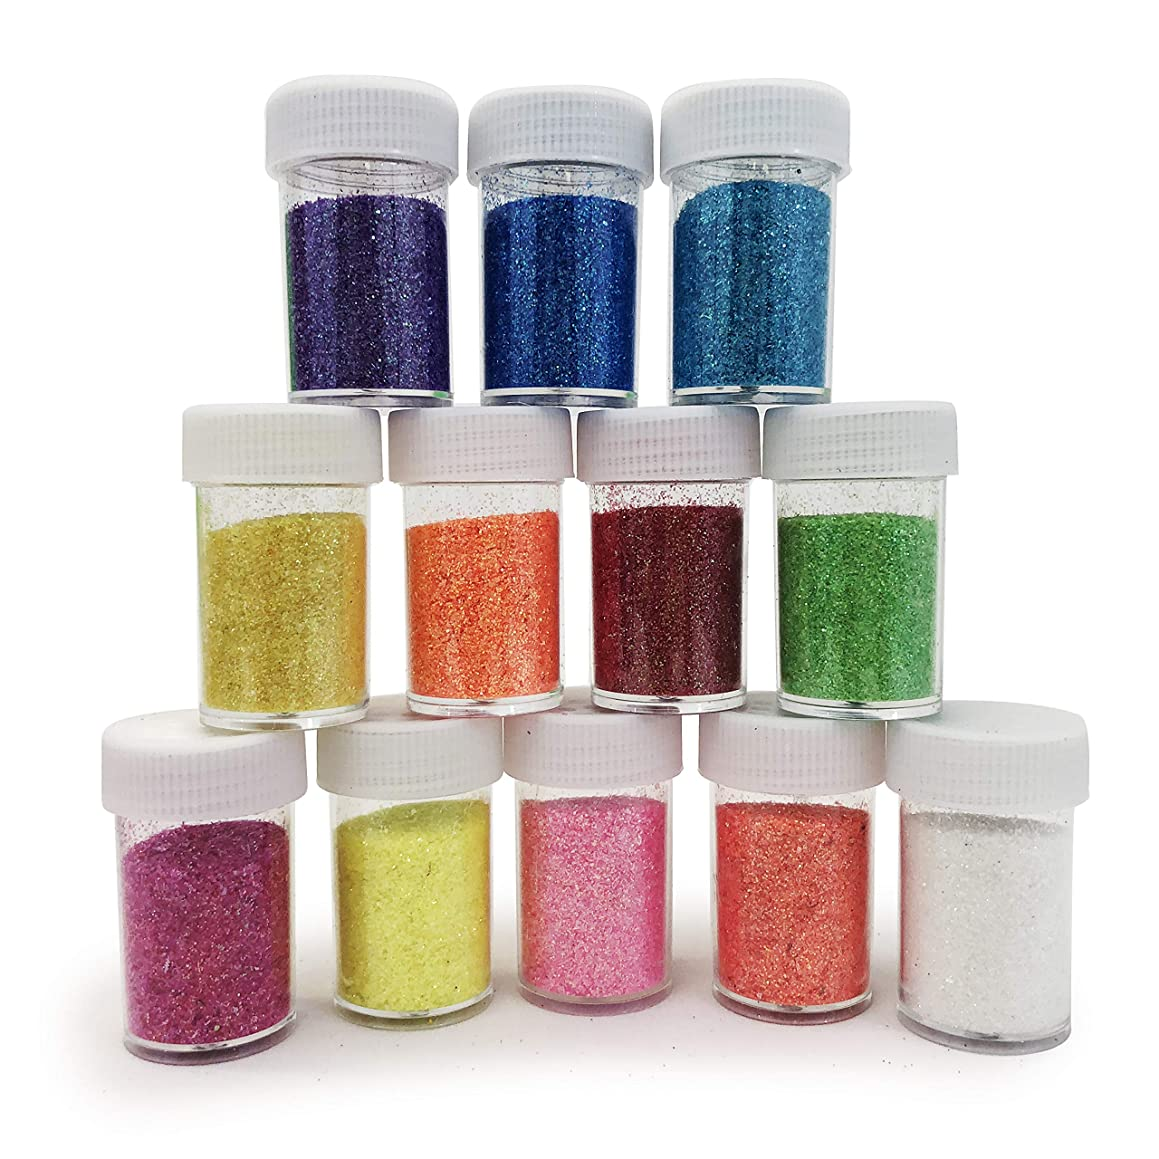 Allgala 12 Assorted Color Fine Glitter Shake Jars for for Arts and Crafts Painting Scrapbook Makeup Slime Party Supply